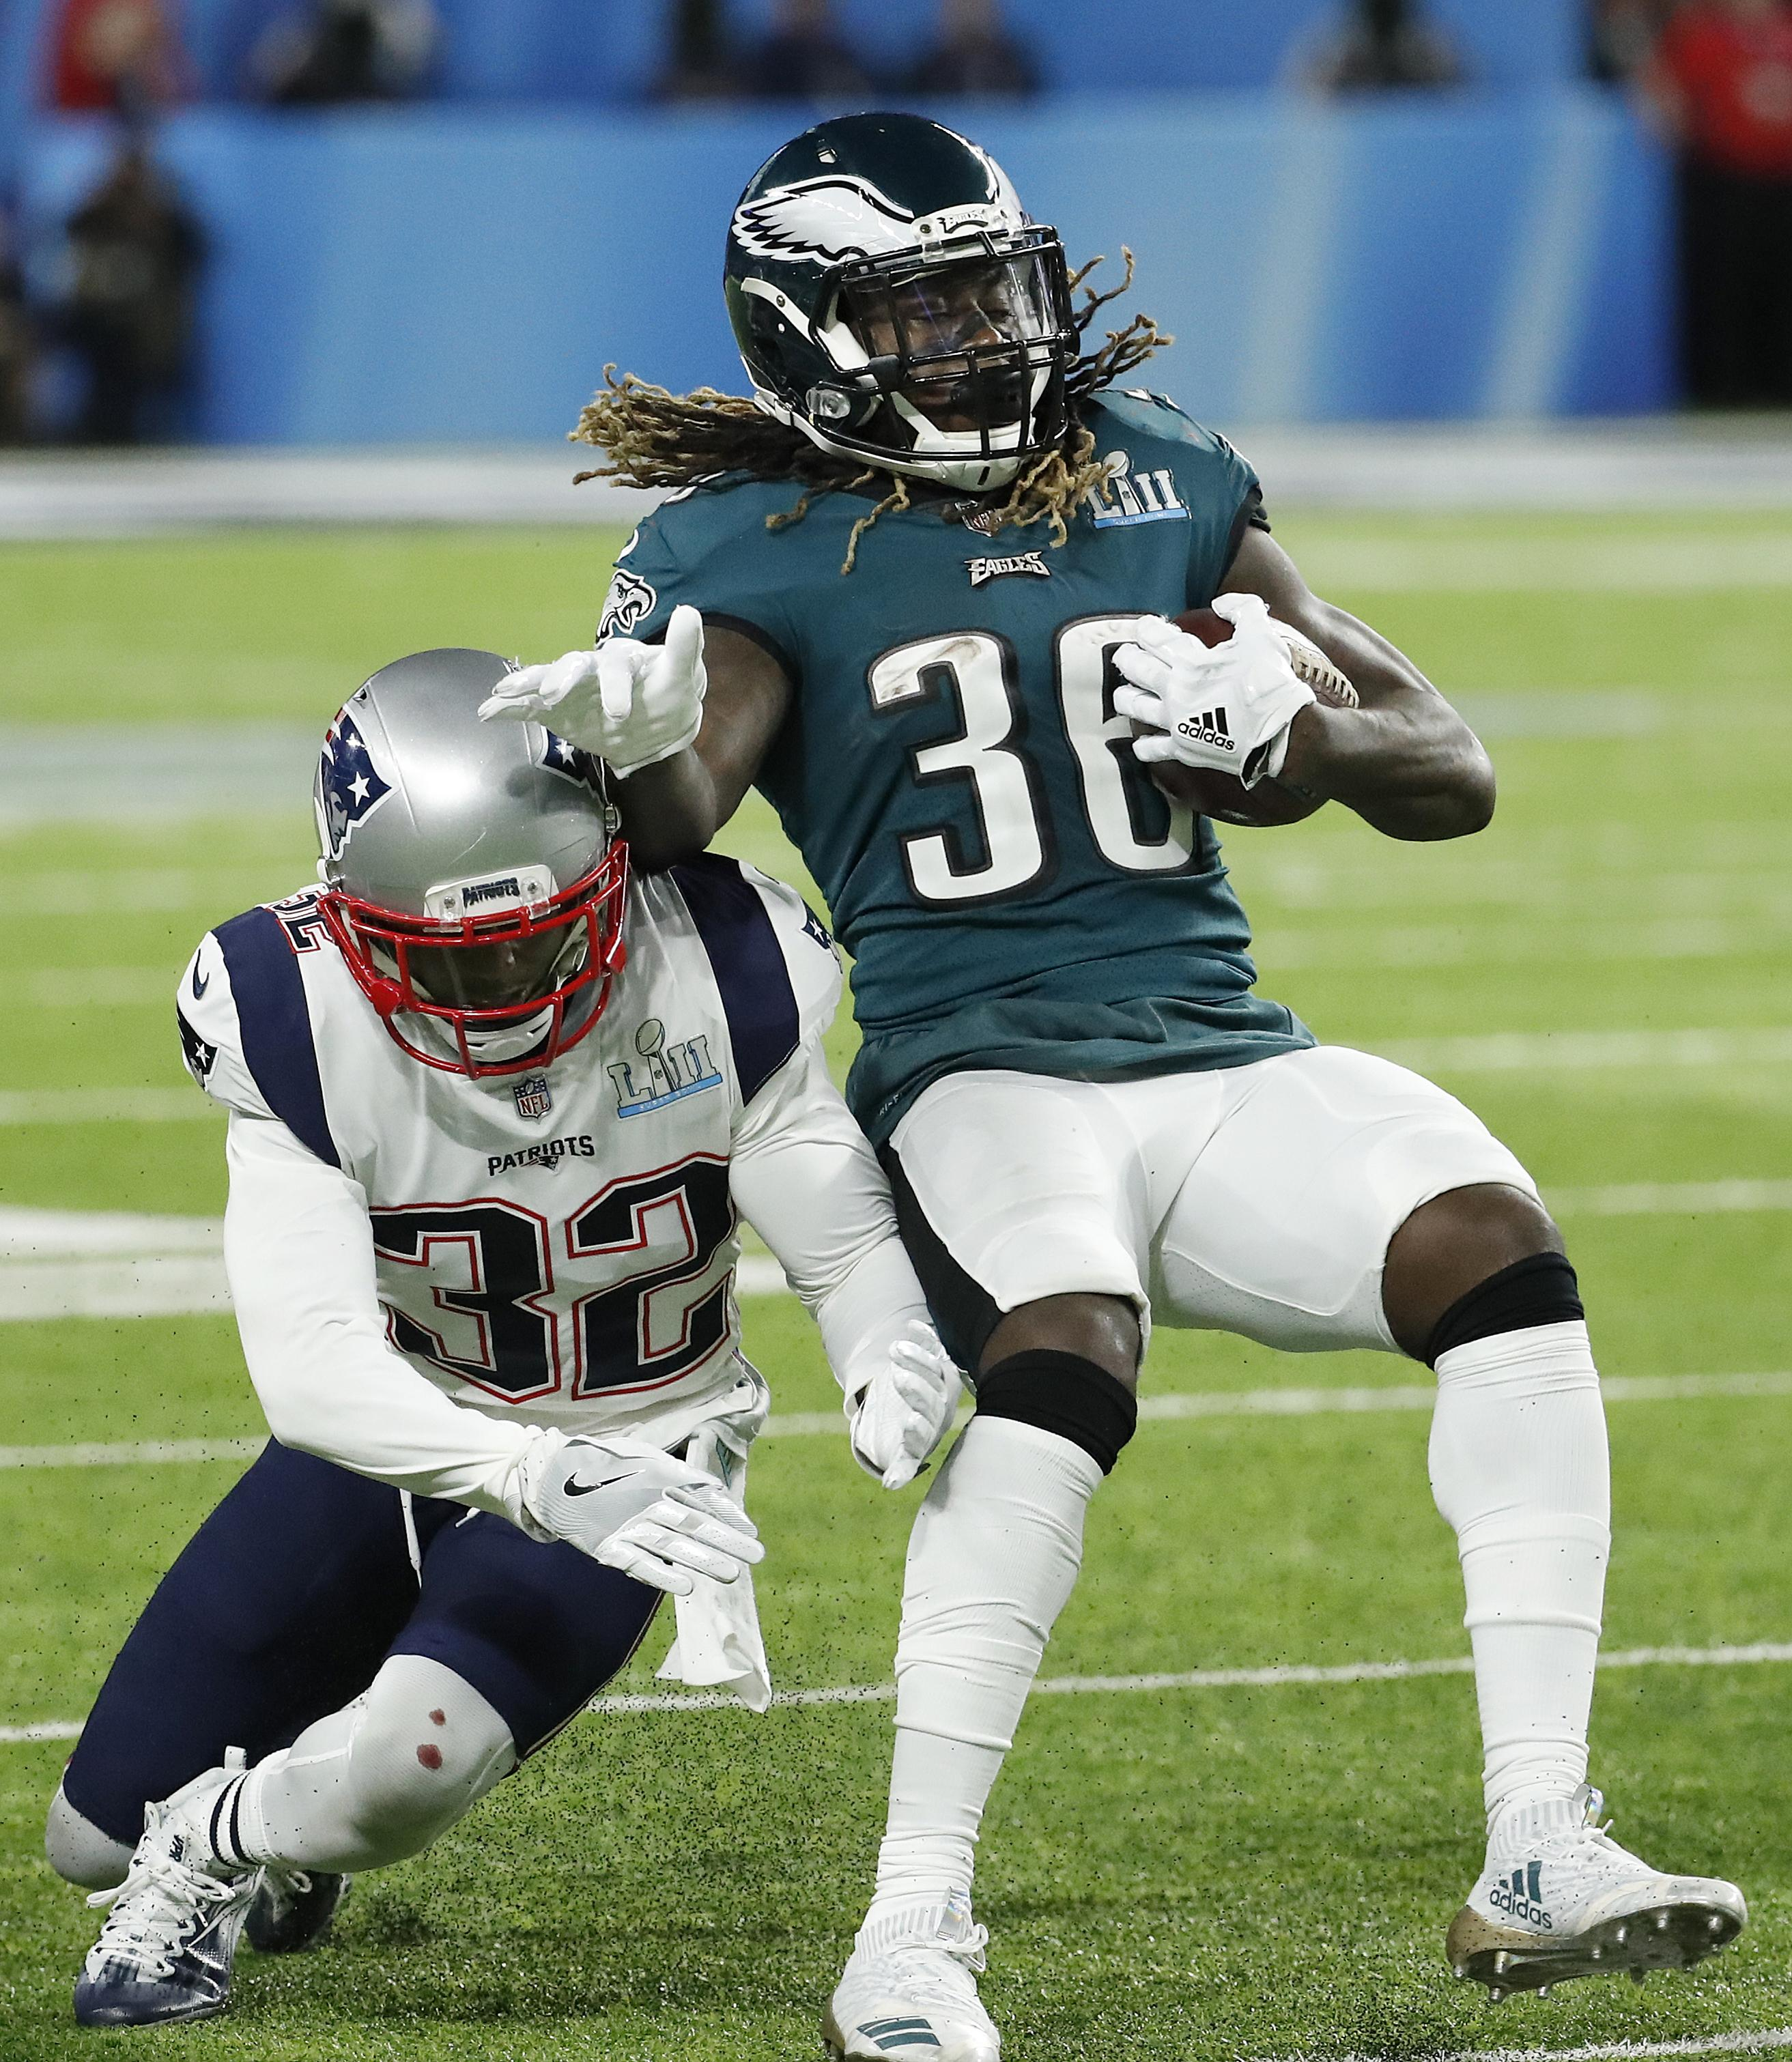 British running back Jay Ajayi in action for the Philadelphia Eagles